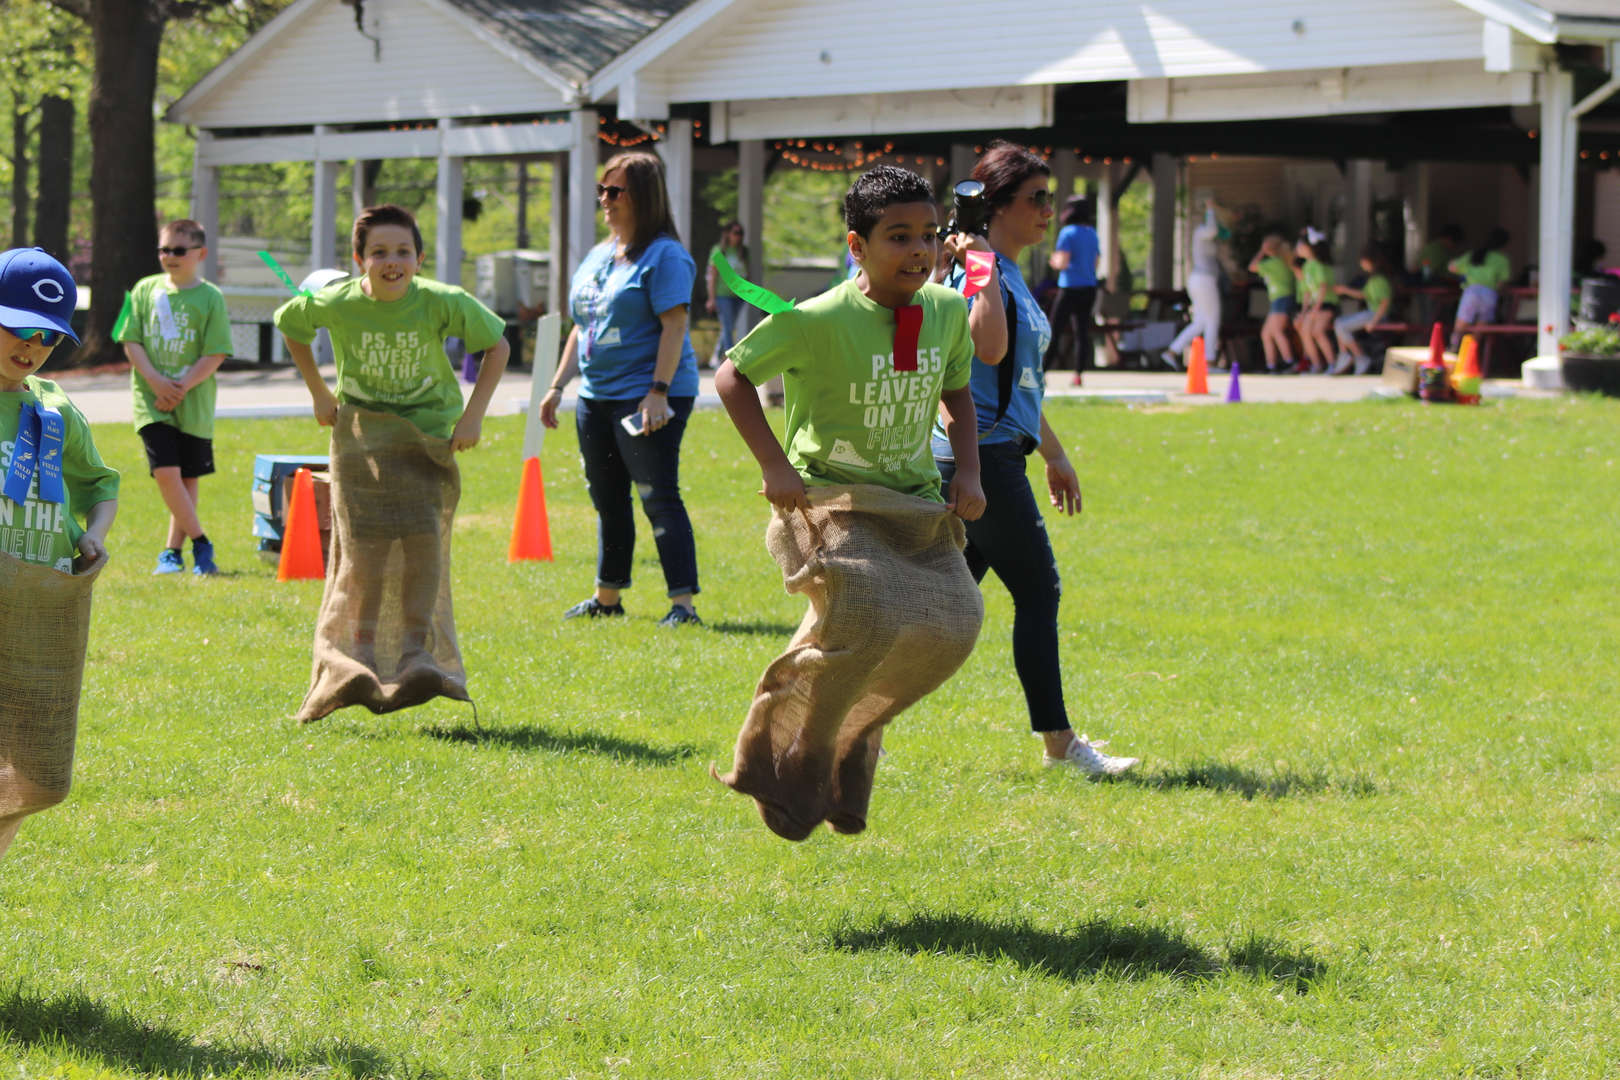 a student jumping in his sack